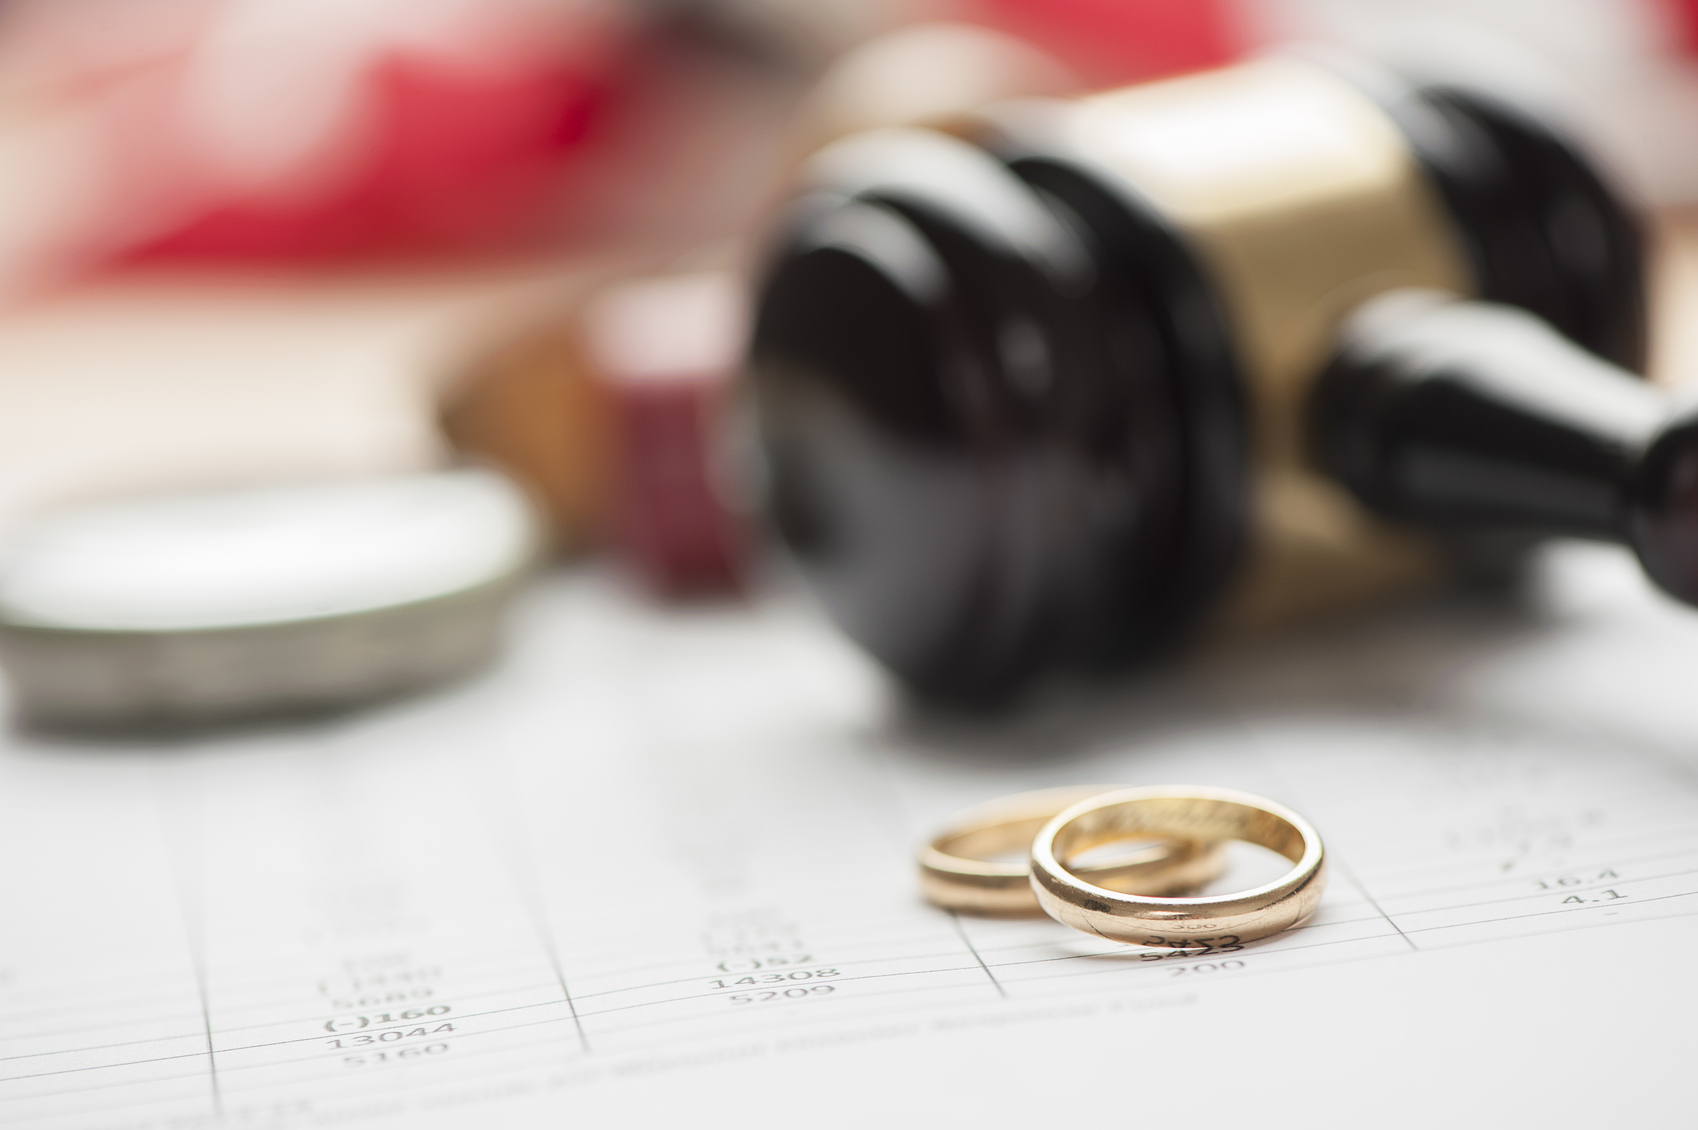 wedding-rings-gavel-marriage-alliance.jpg